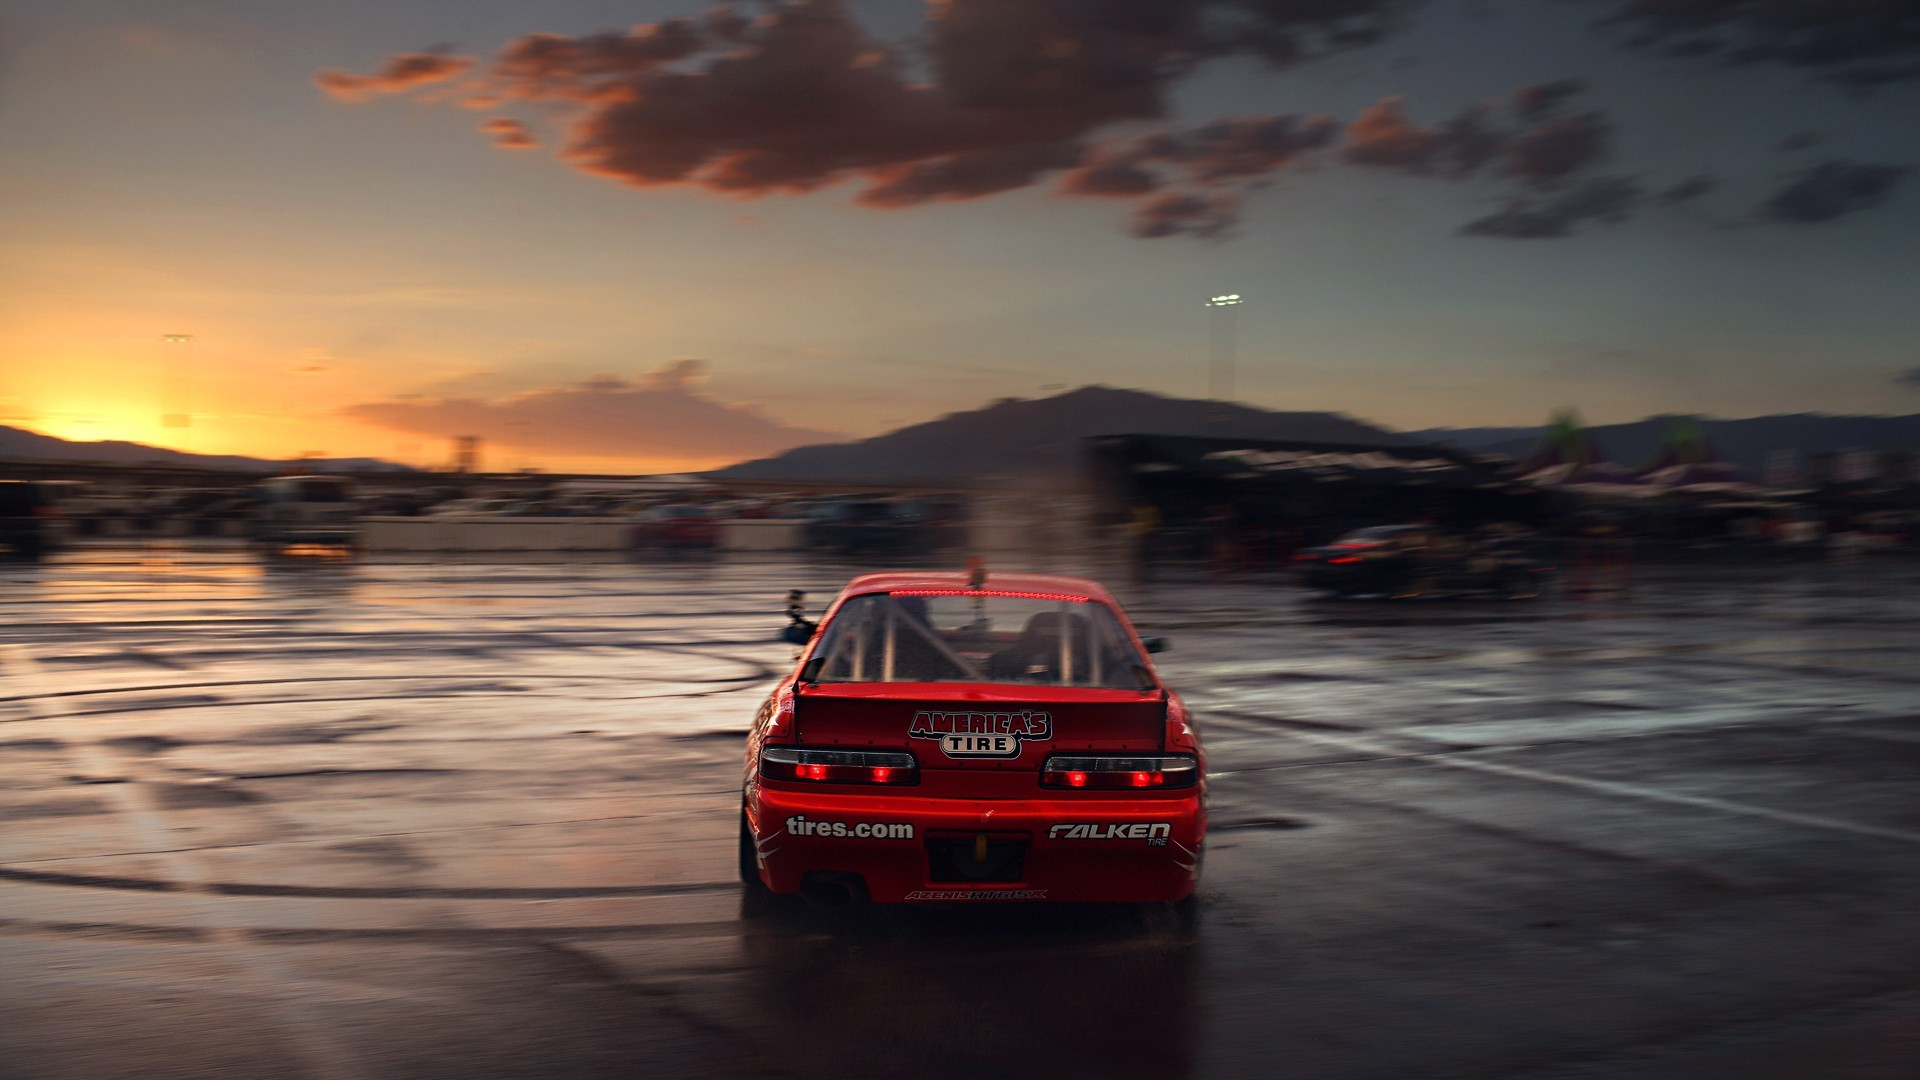 Drift, HD Cars, 4k Wallpapers, Images, Backgrounds, Photos